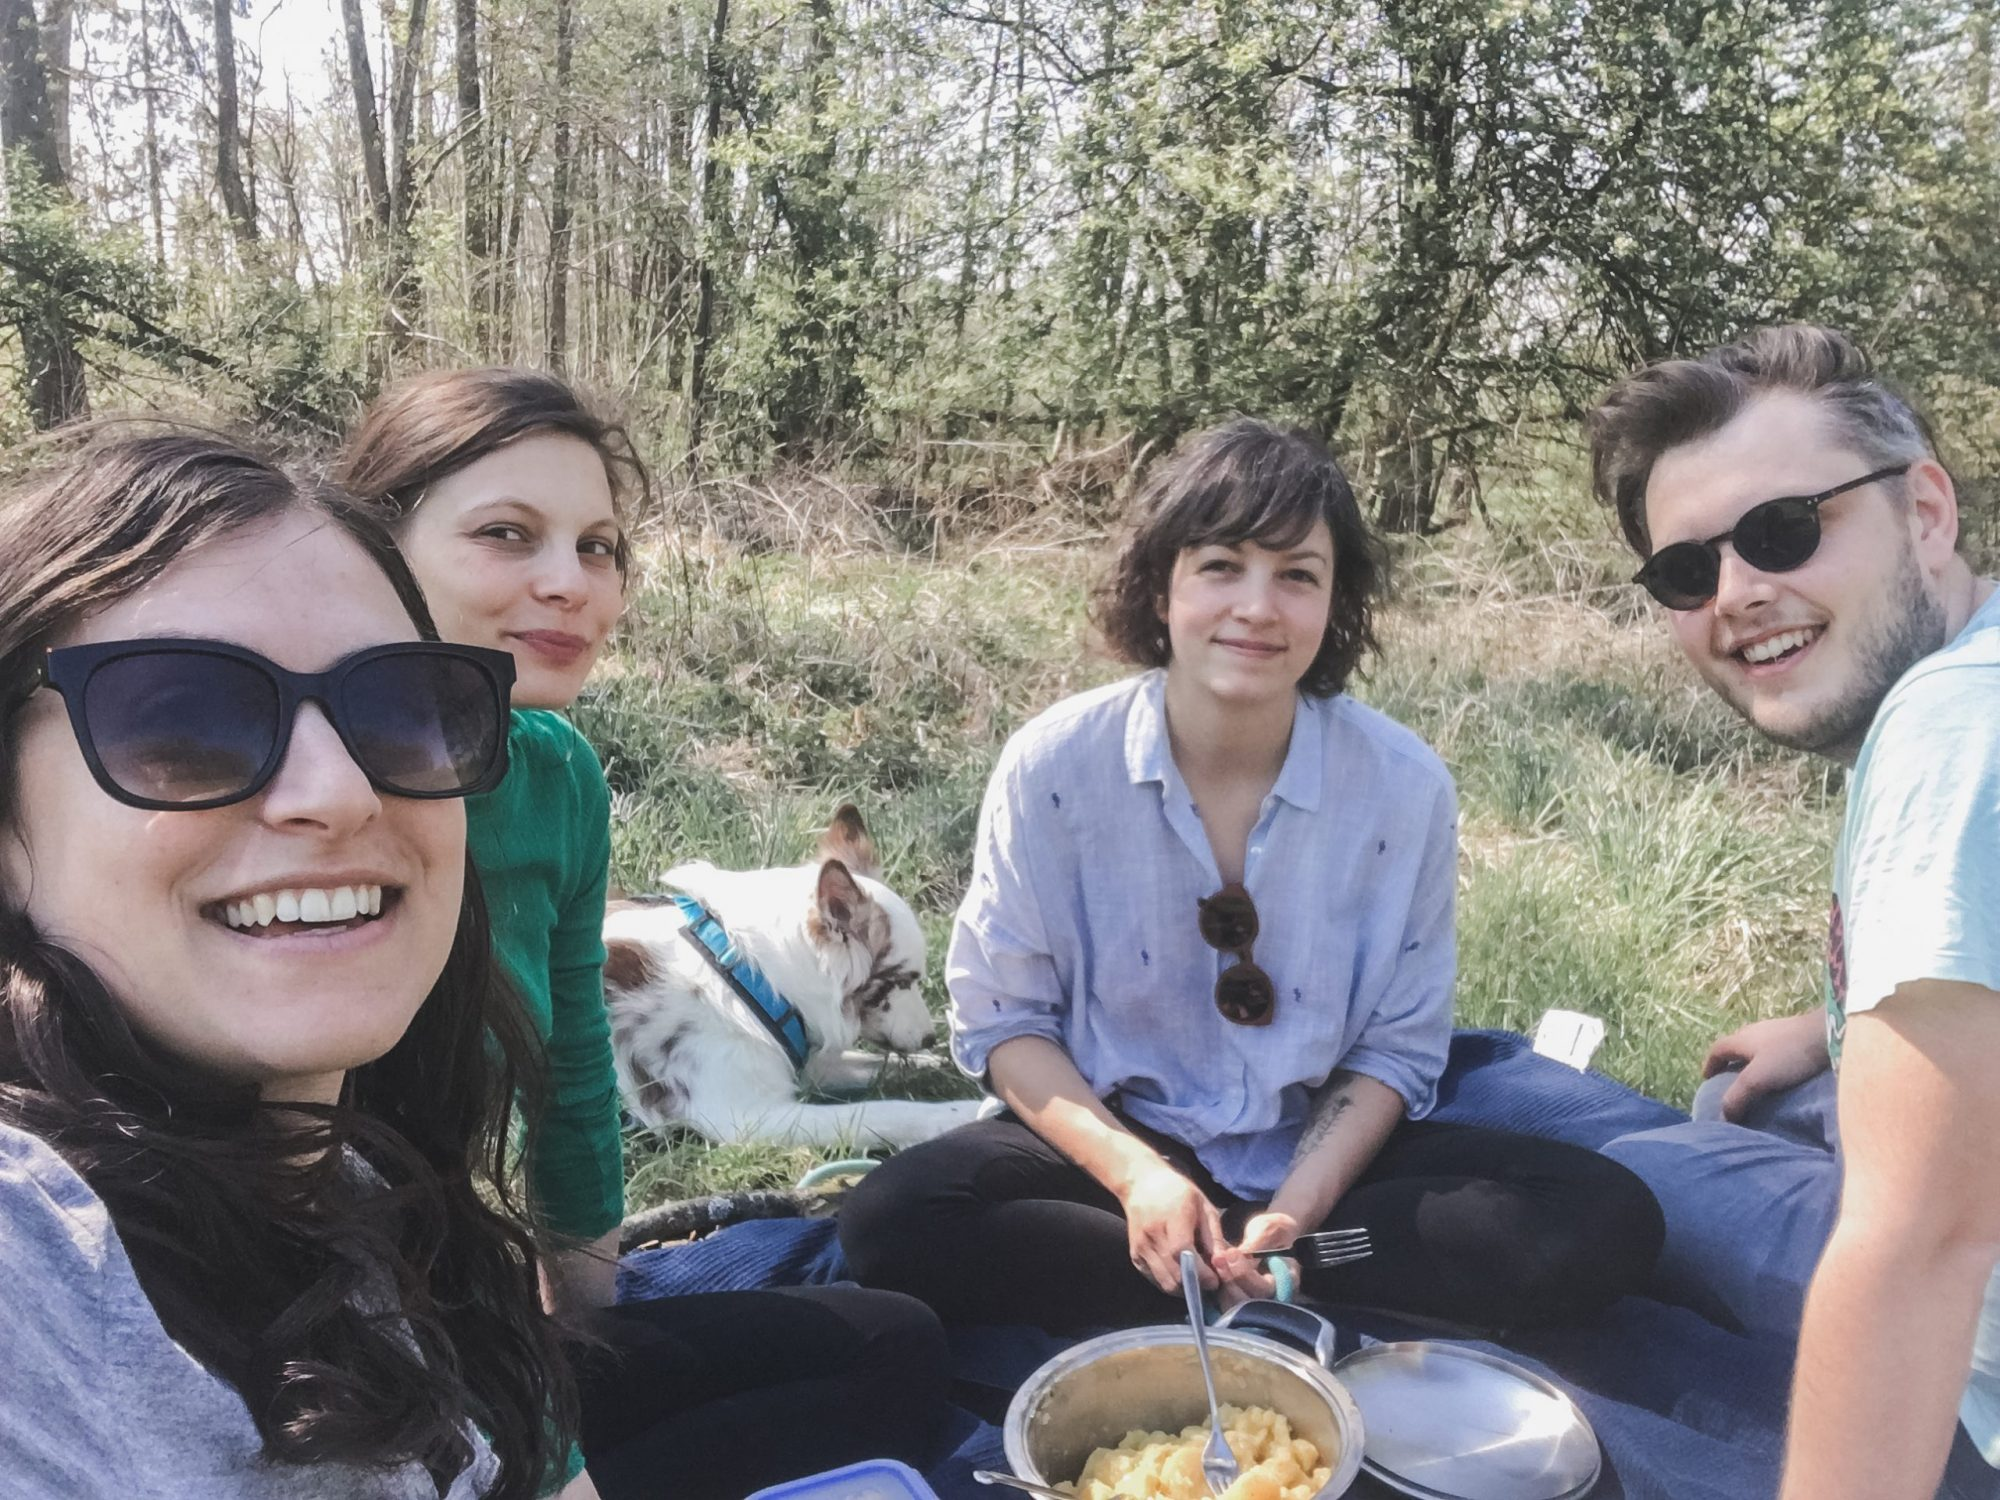 A Picnic in the Austrian Countryside